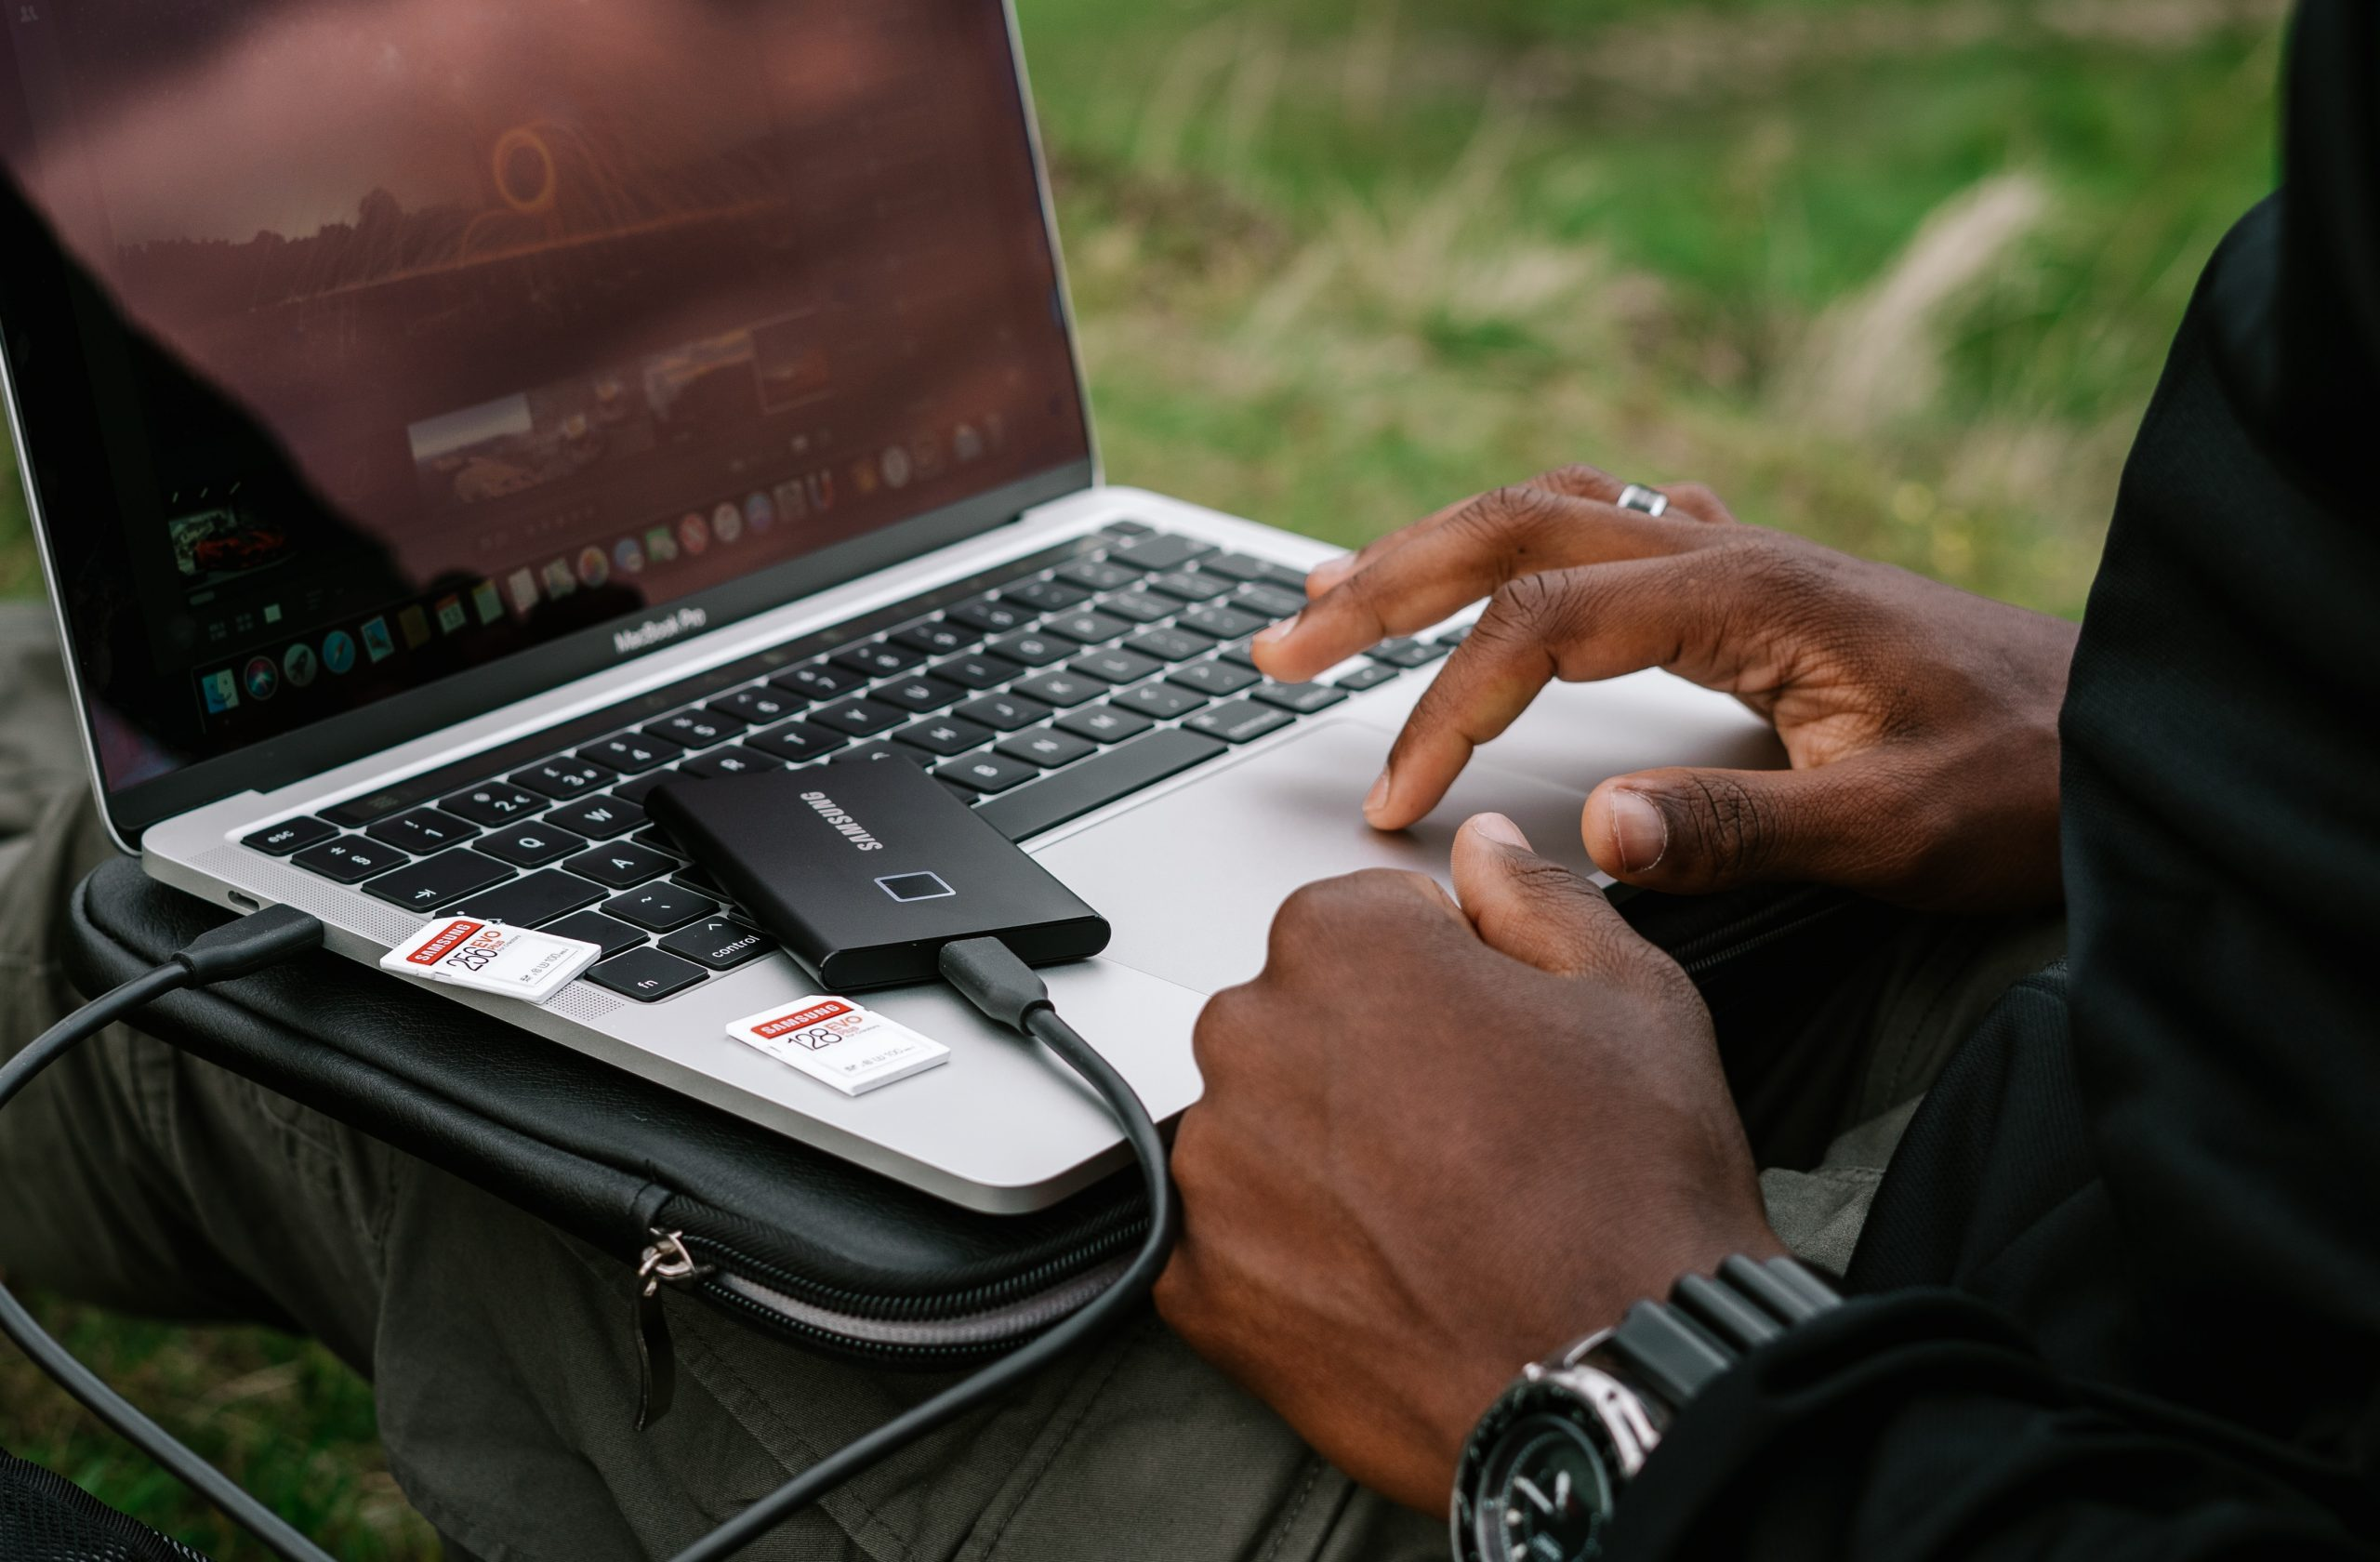 person using gray asus laptop computer